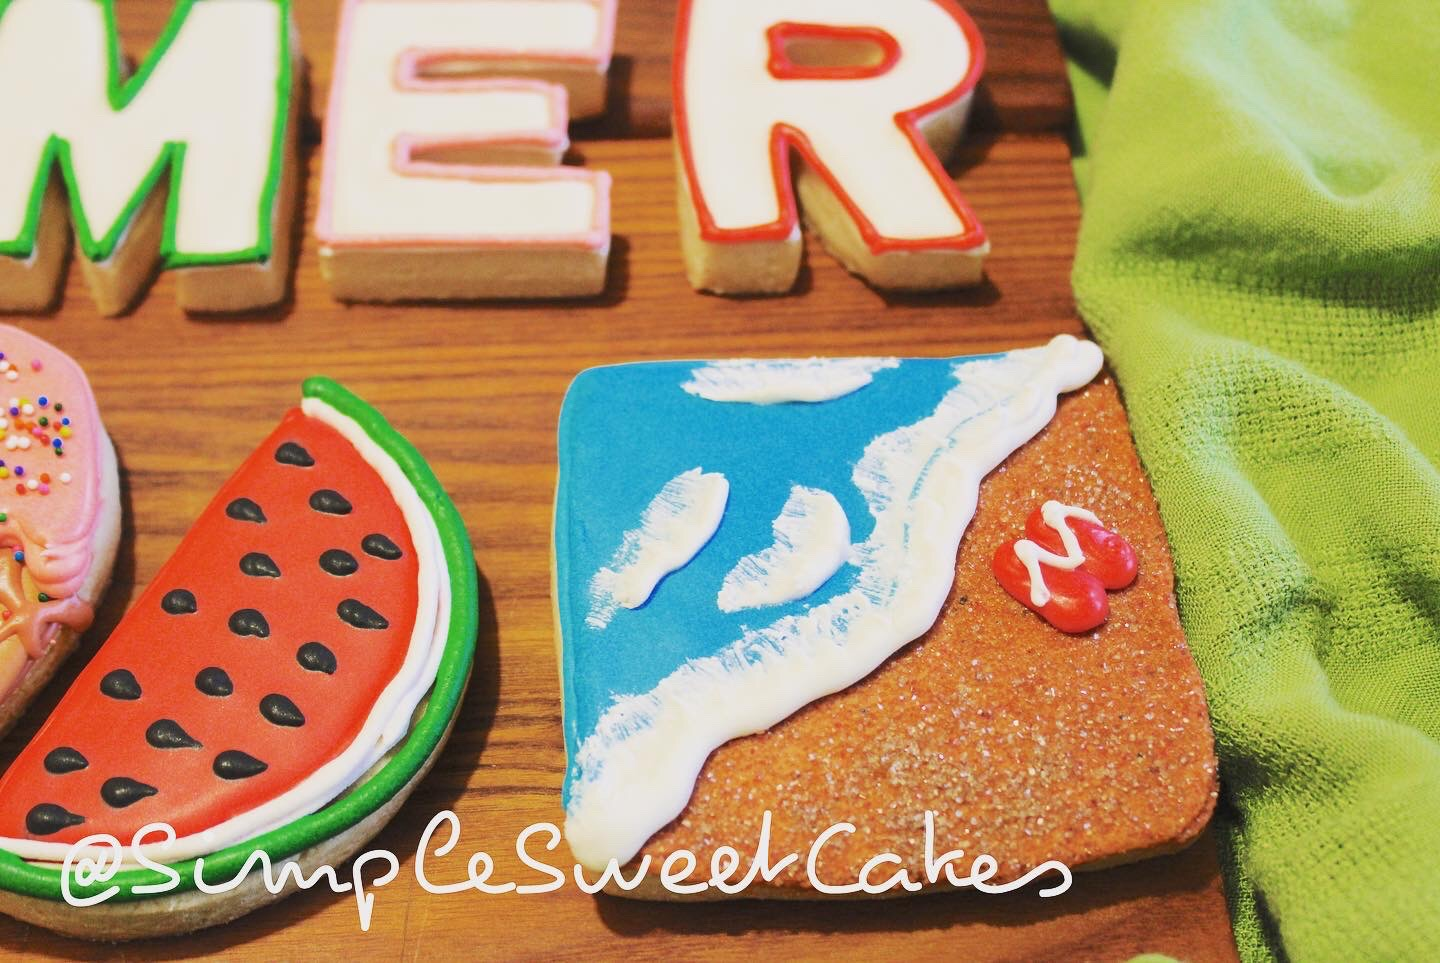 Decorated Sugar Cookie - Beach Scene (Re